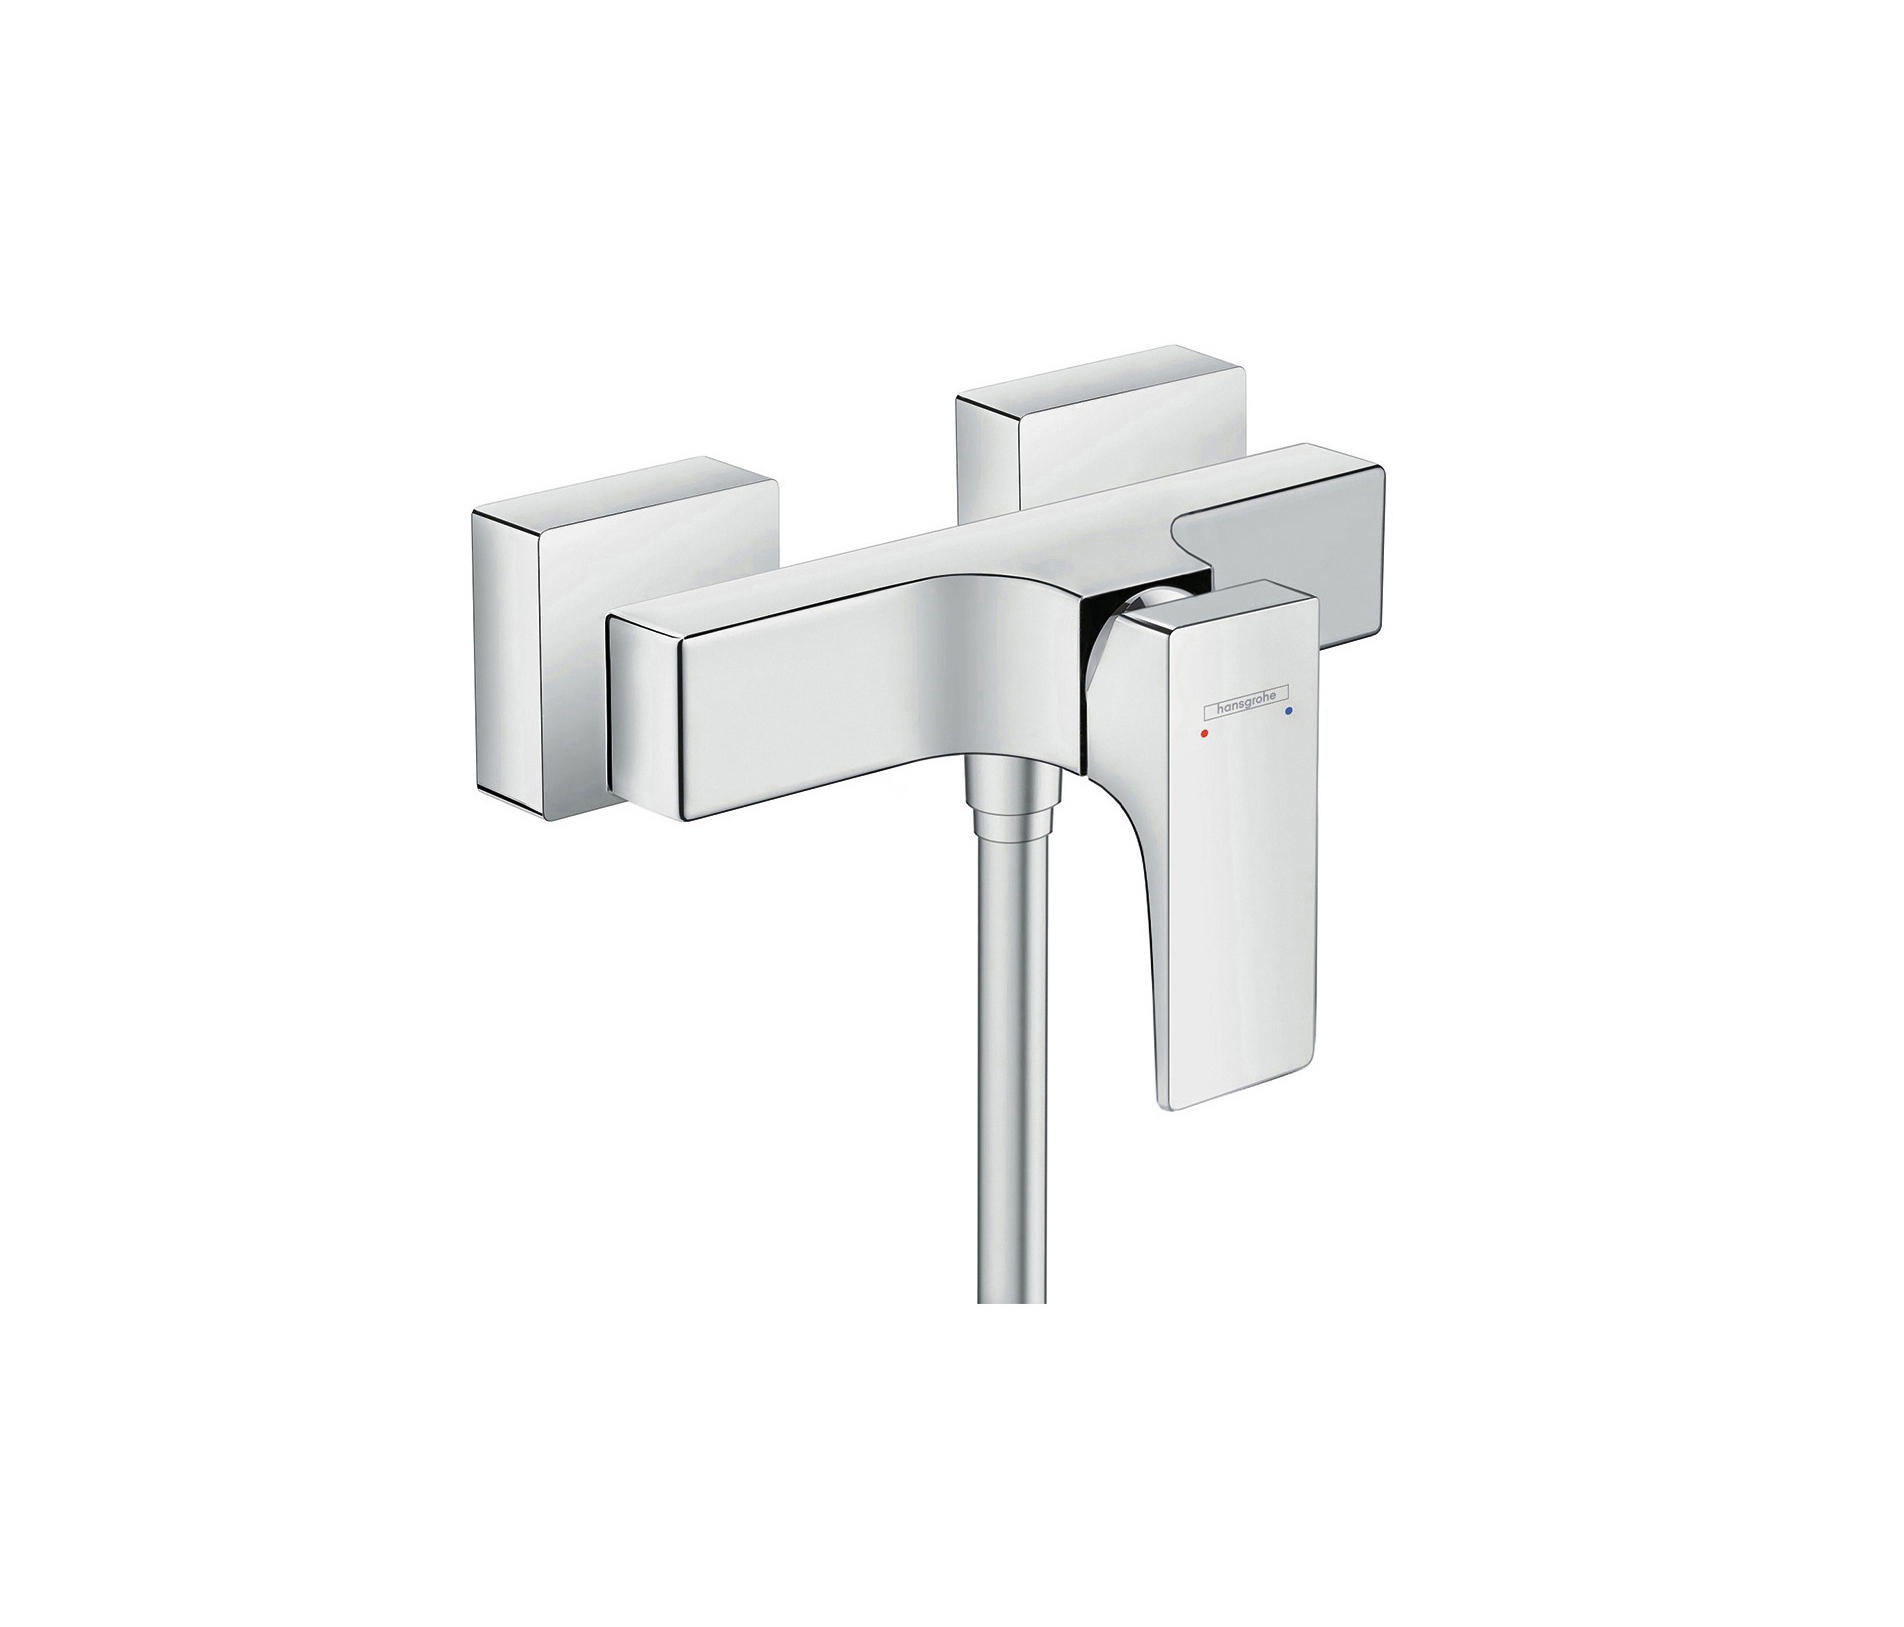 hansgrohe metropol single lever shower mixer with lever. Black Bedroom Furniture Sets. Home Design Ideas